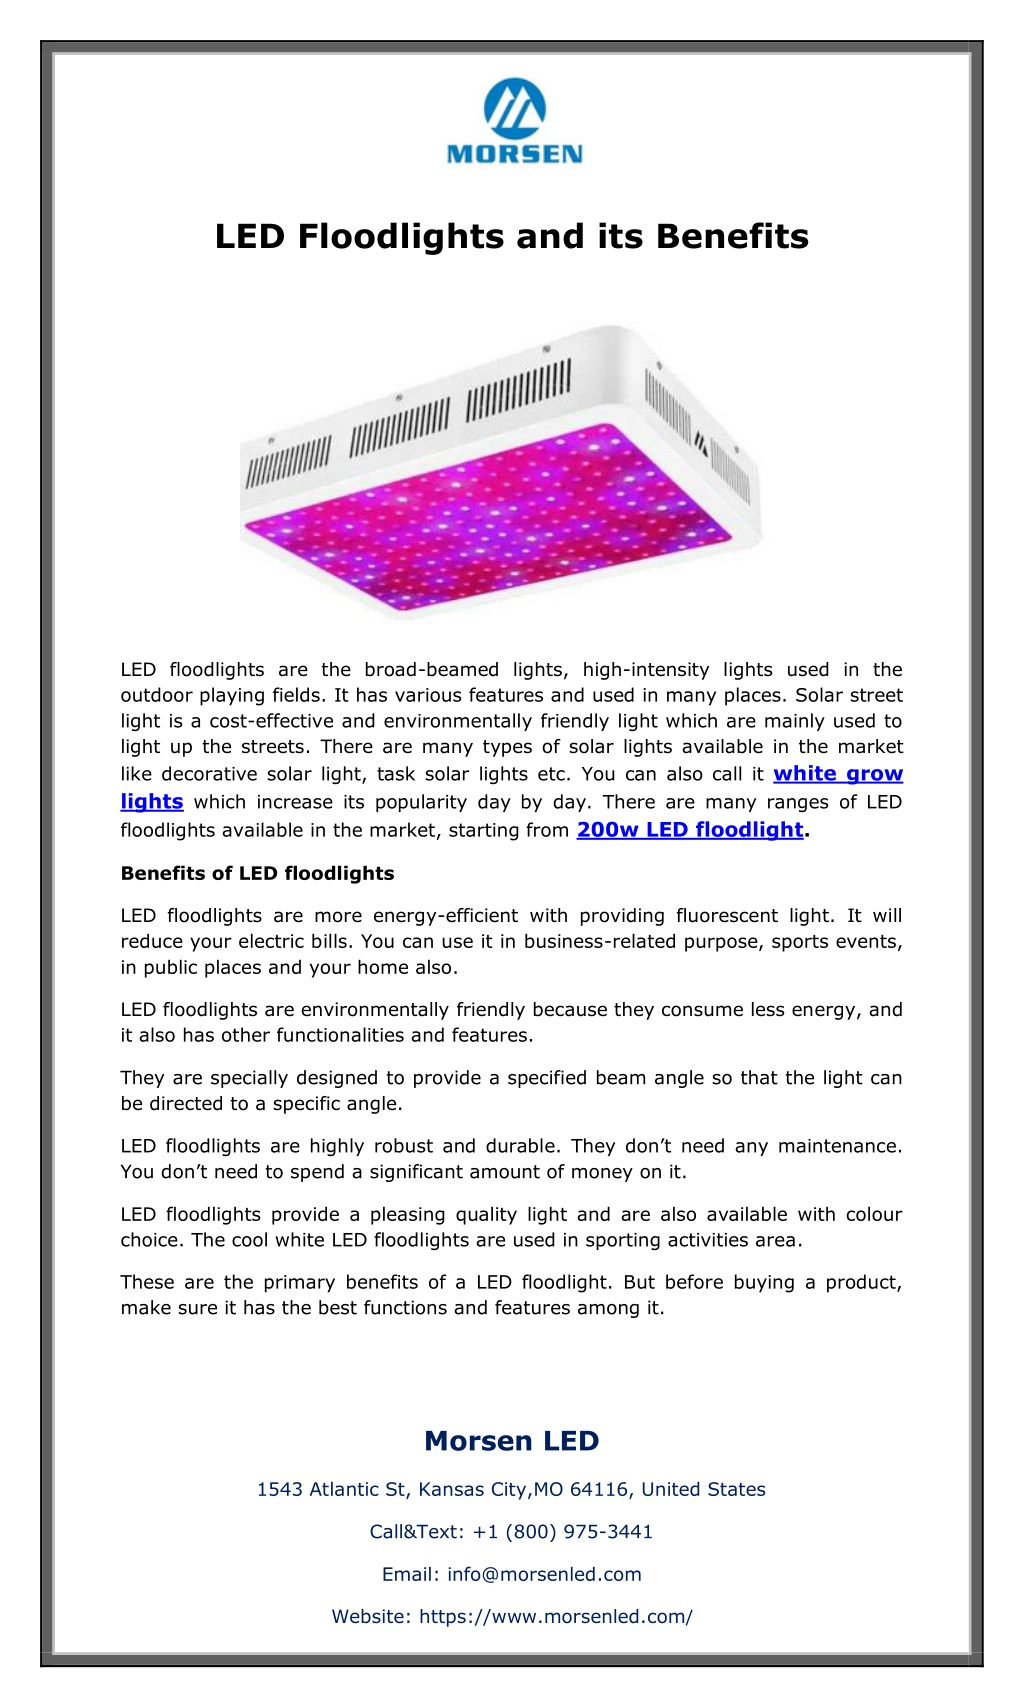 LED Floodlights and its Benefits